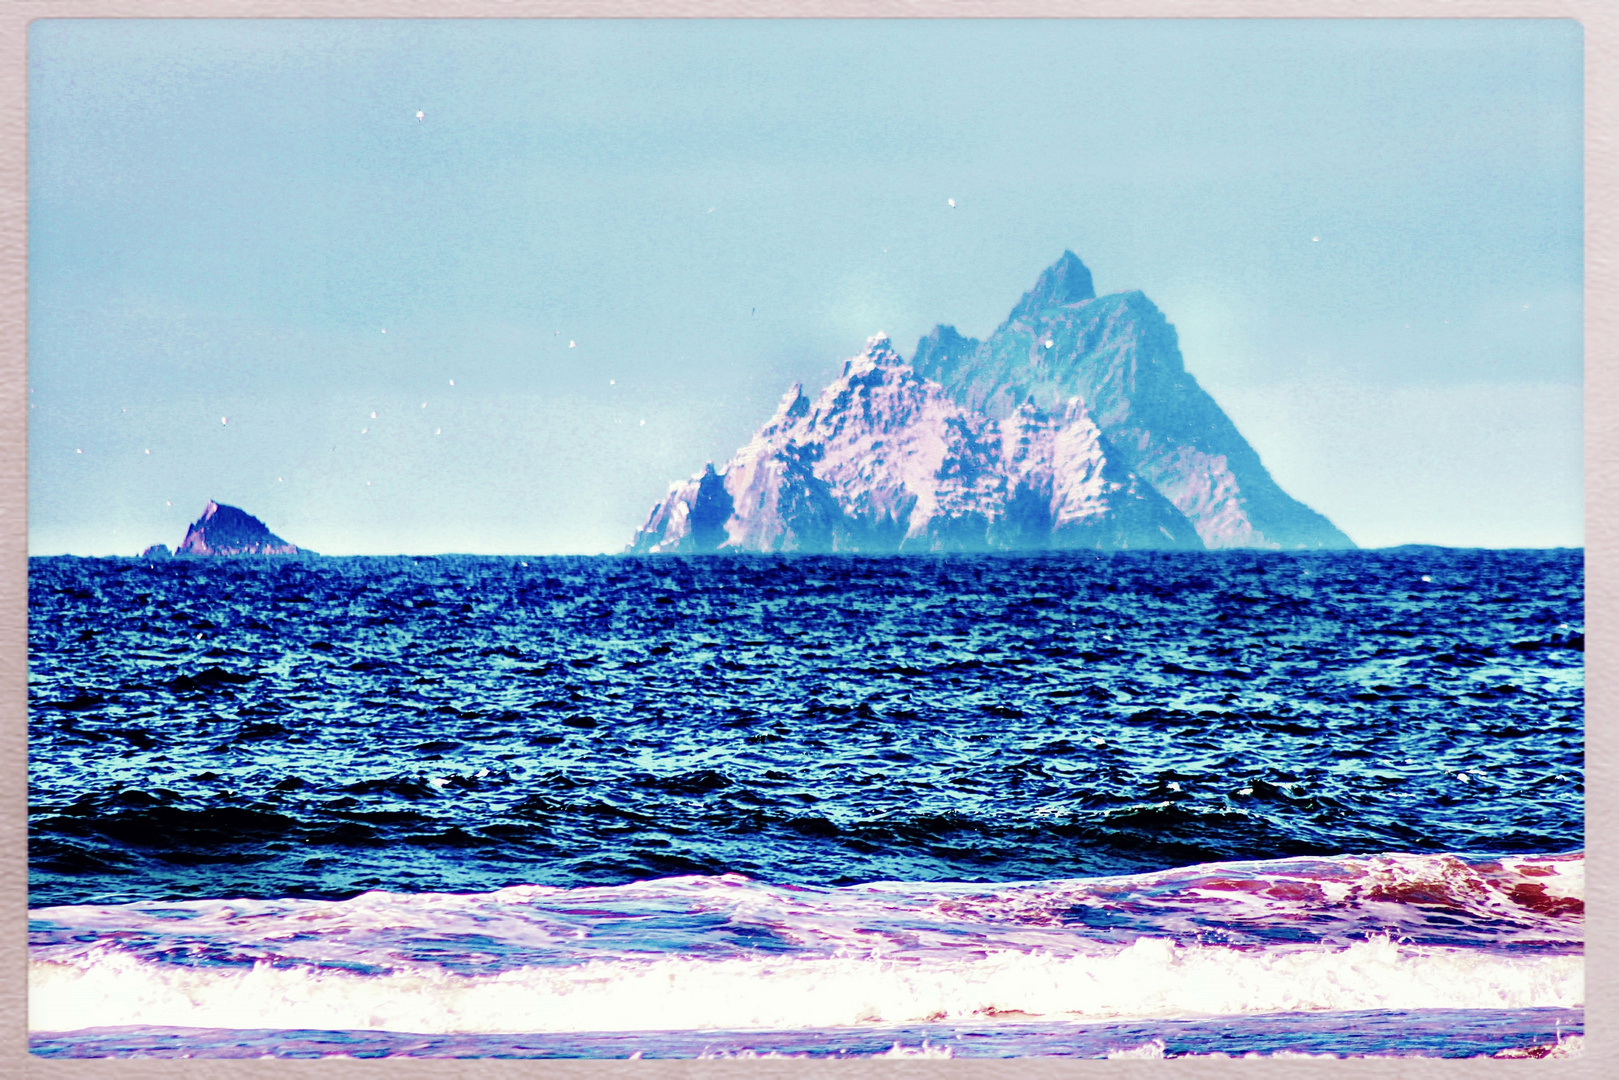 Na Scealaga / The Skelligs